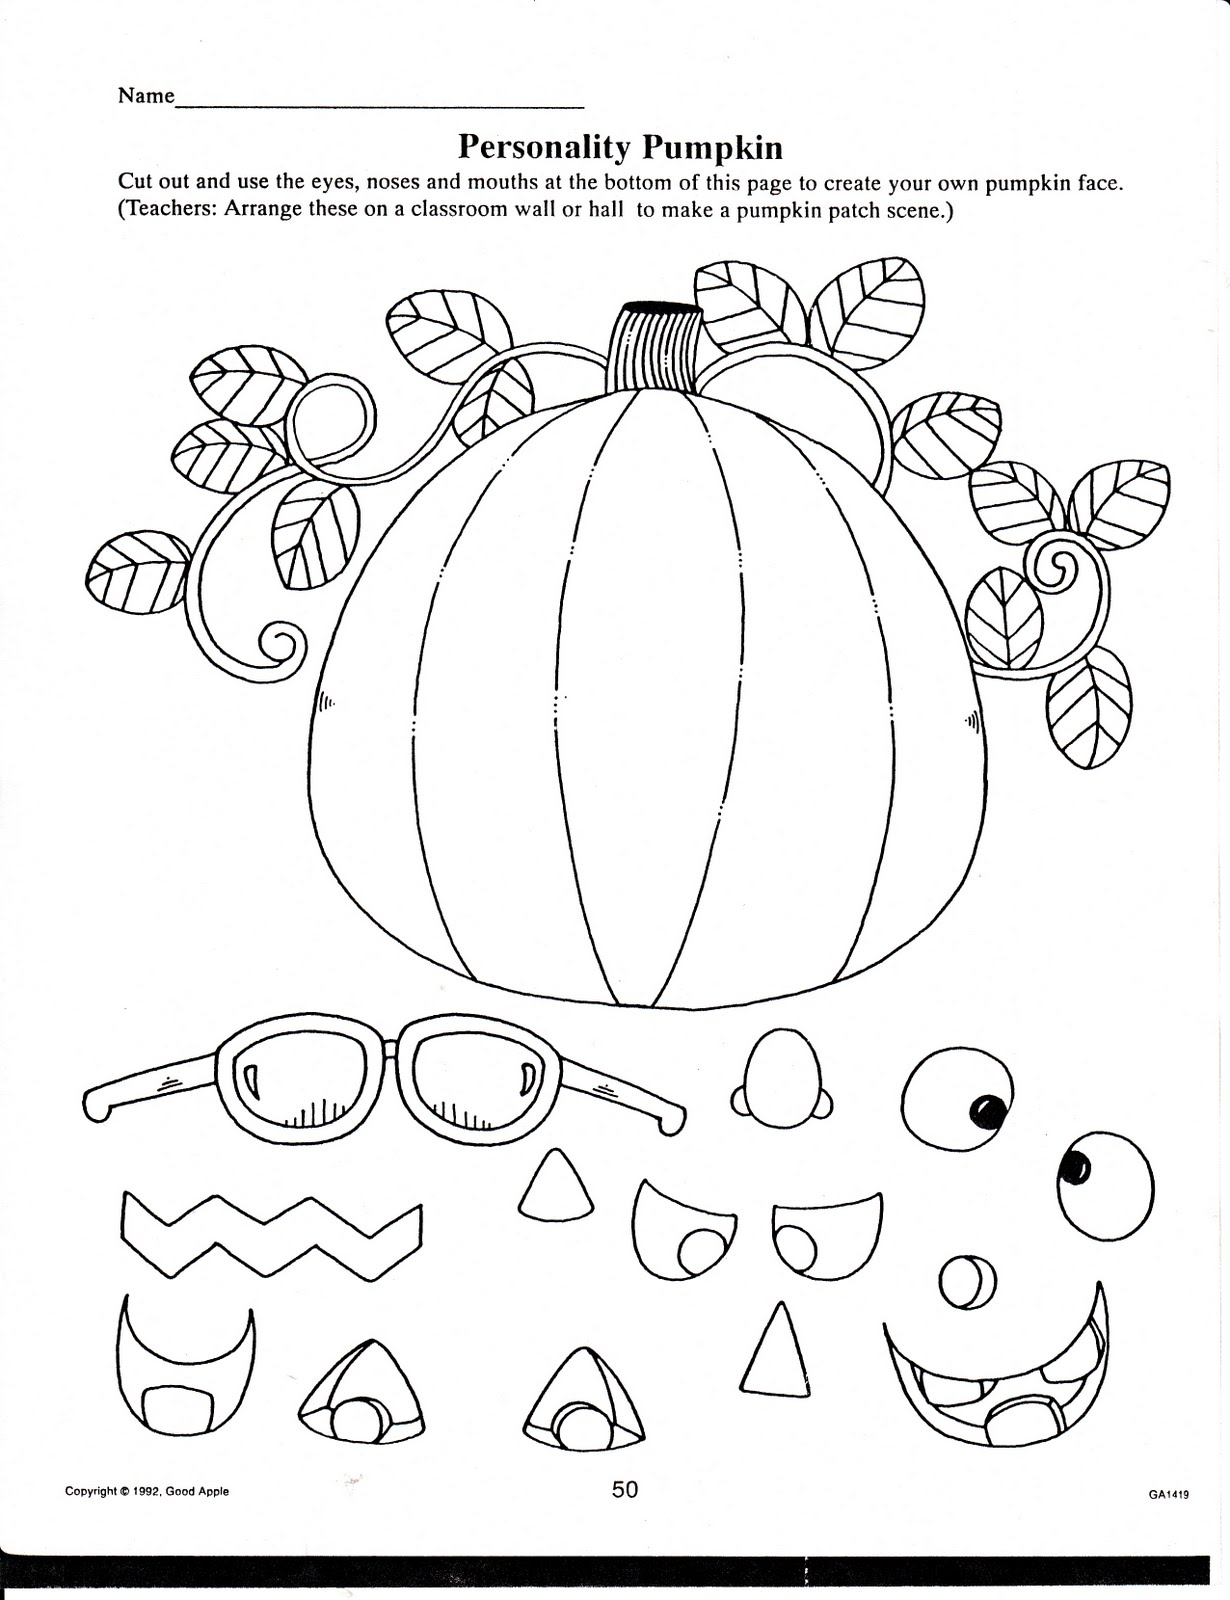 Accomplished image intended for fun printable activities